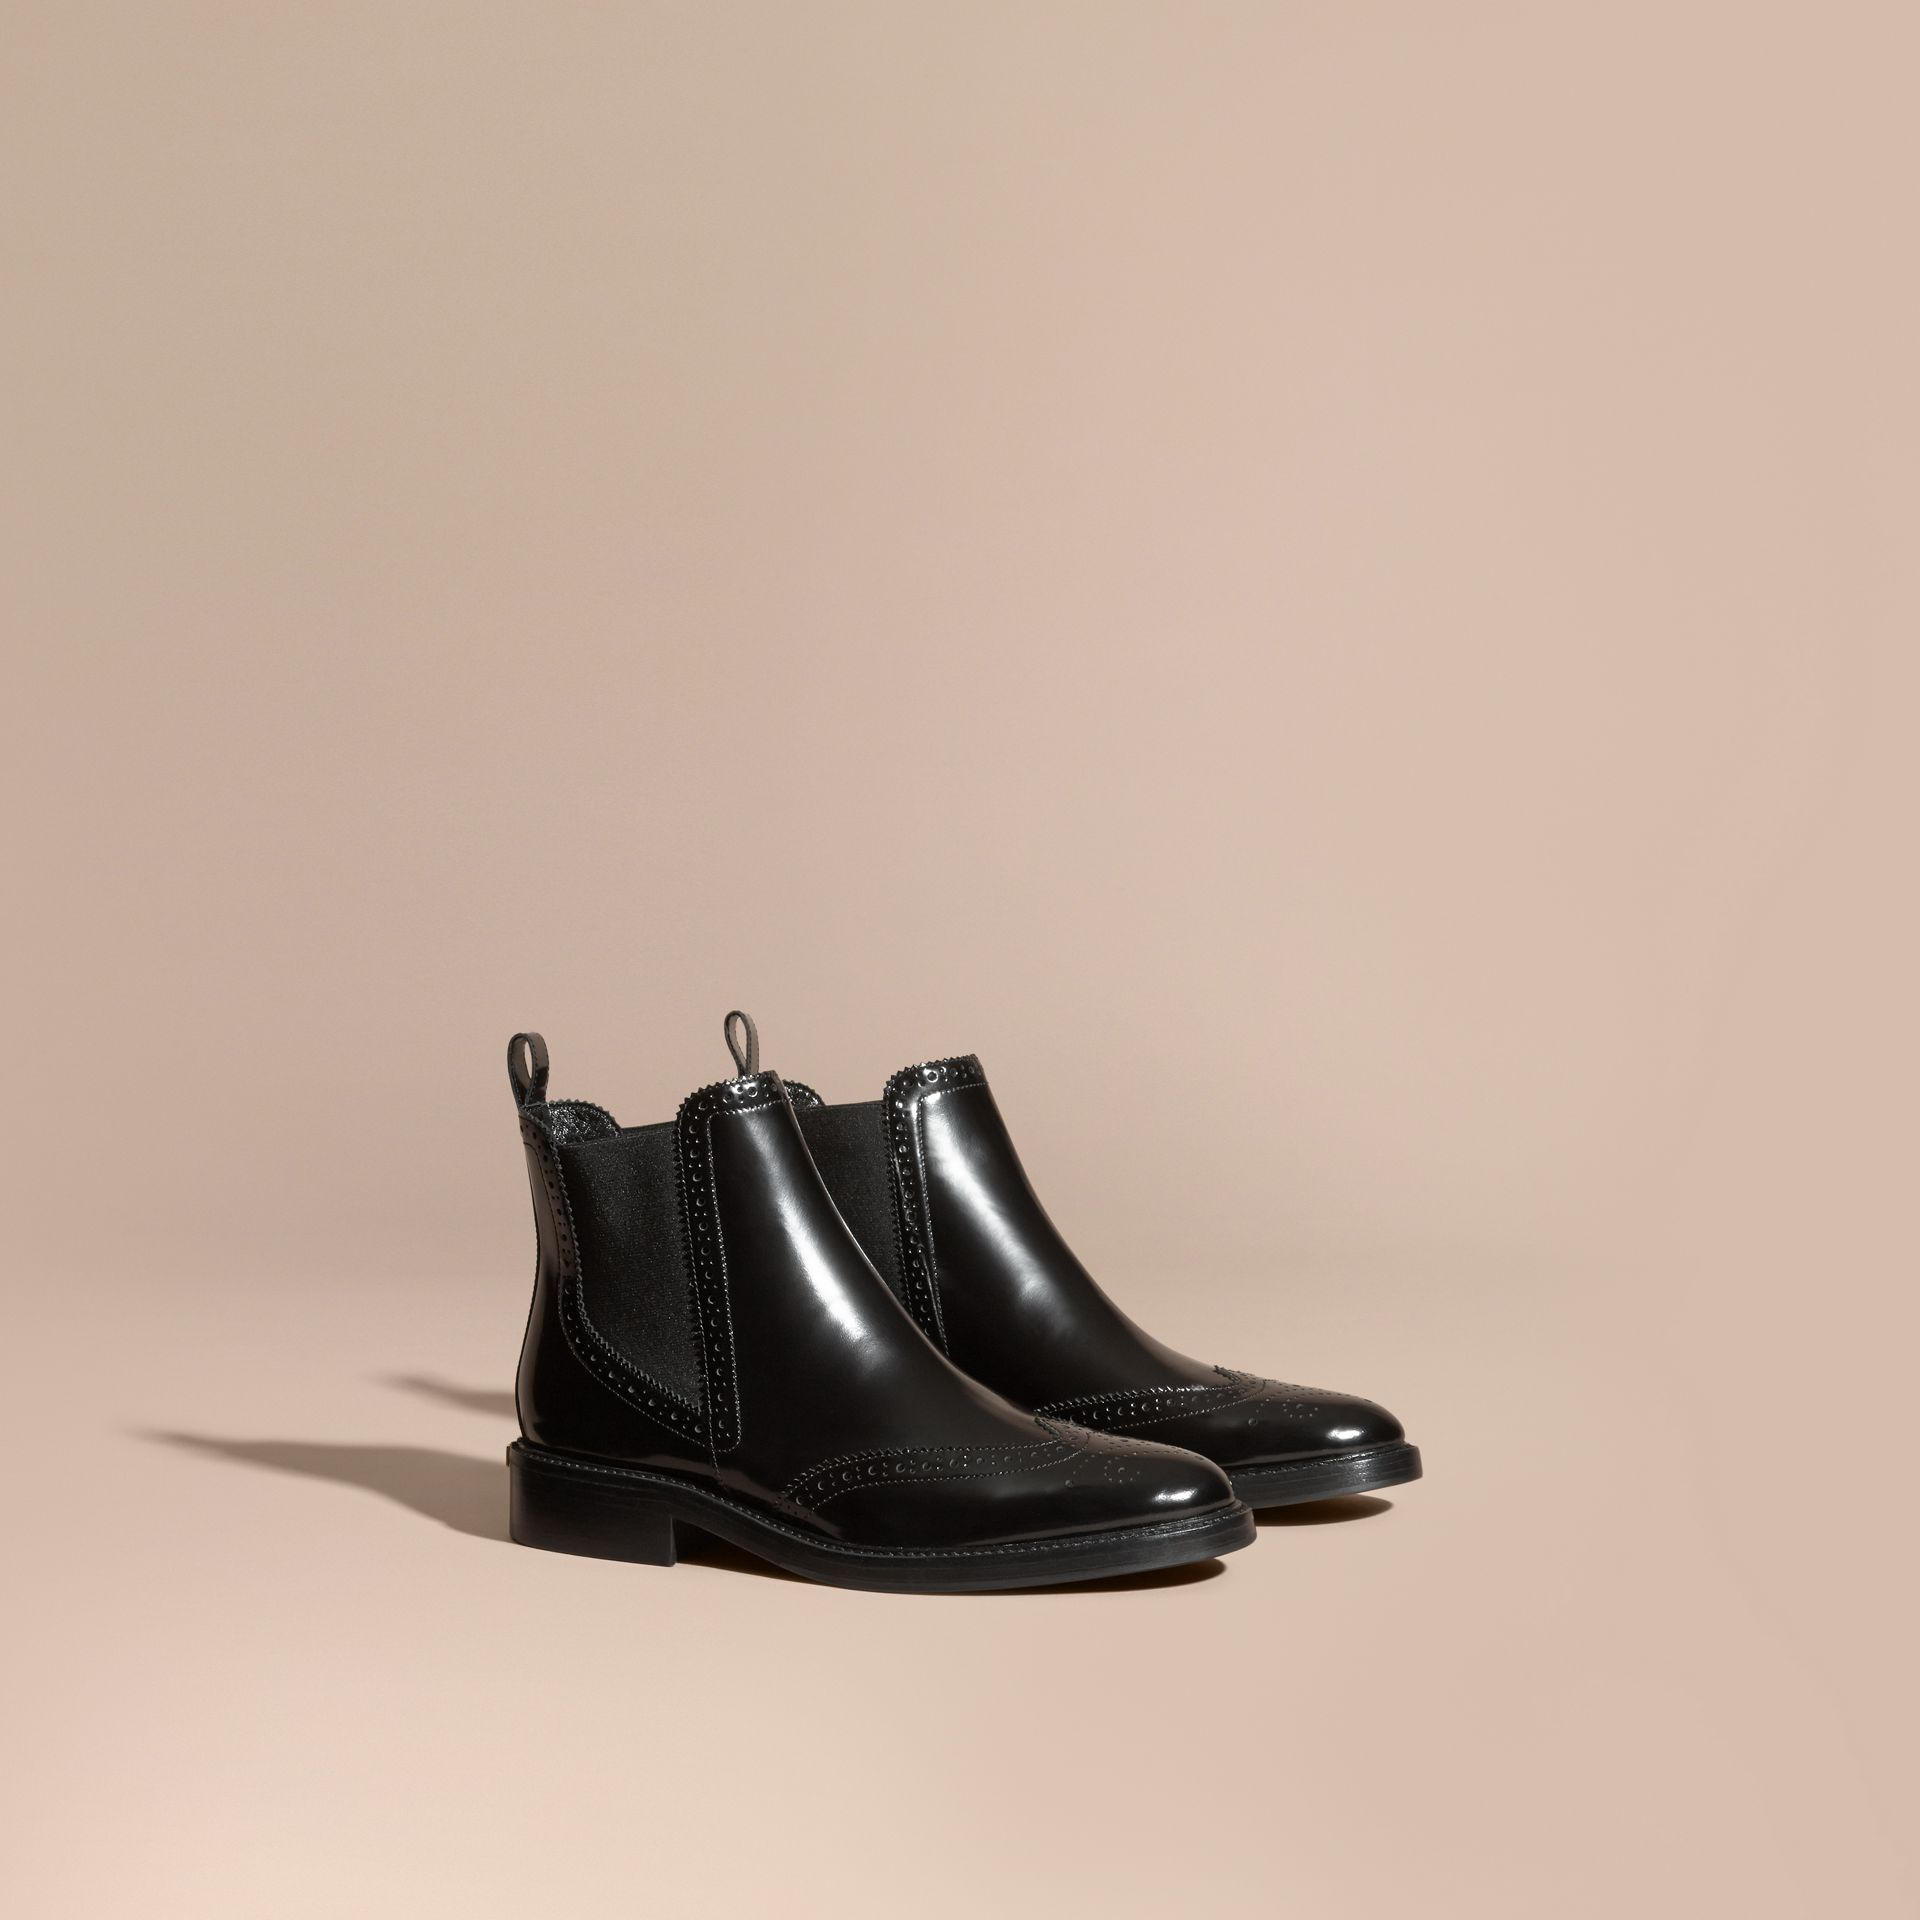 Leather Wingtip Chelsea Boots in Black - Women | Burberry - gallery image 1